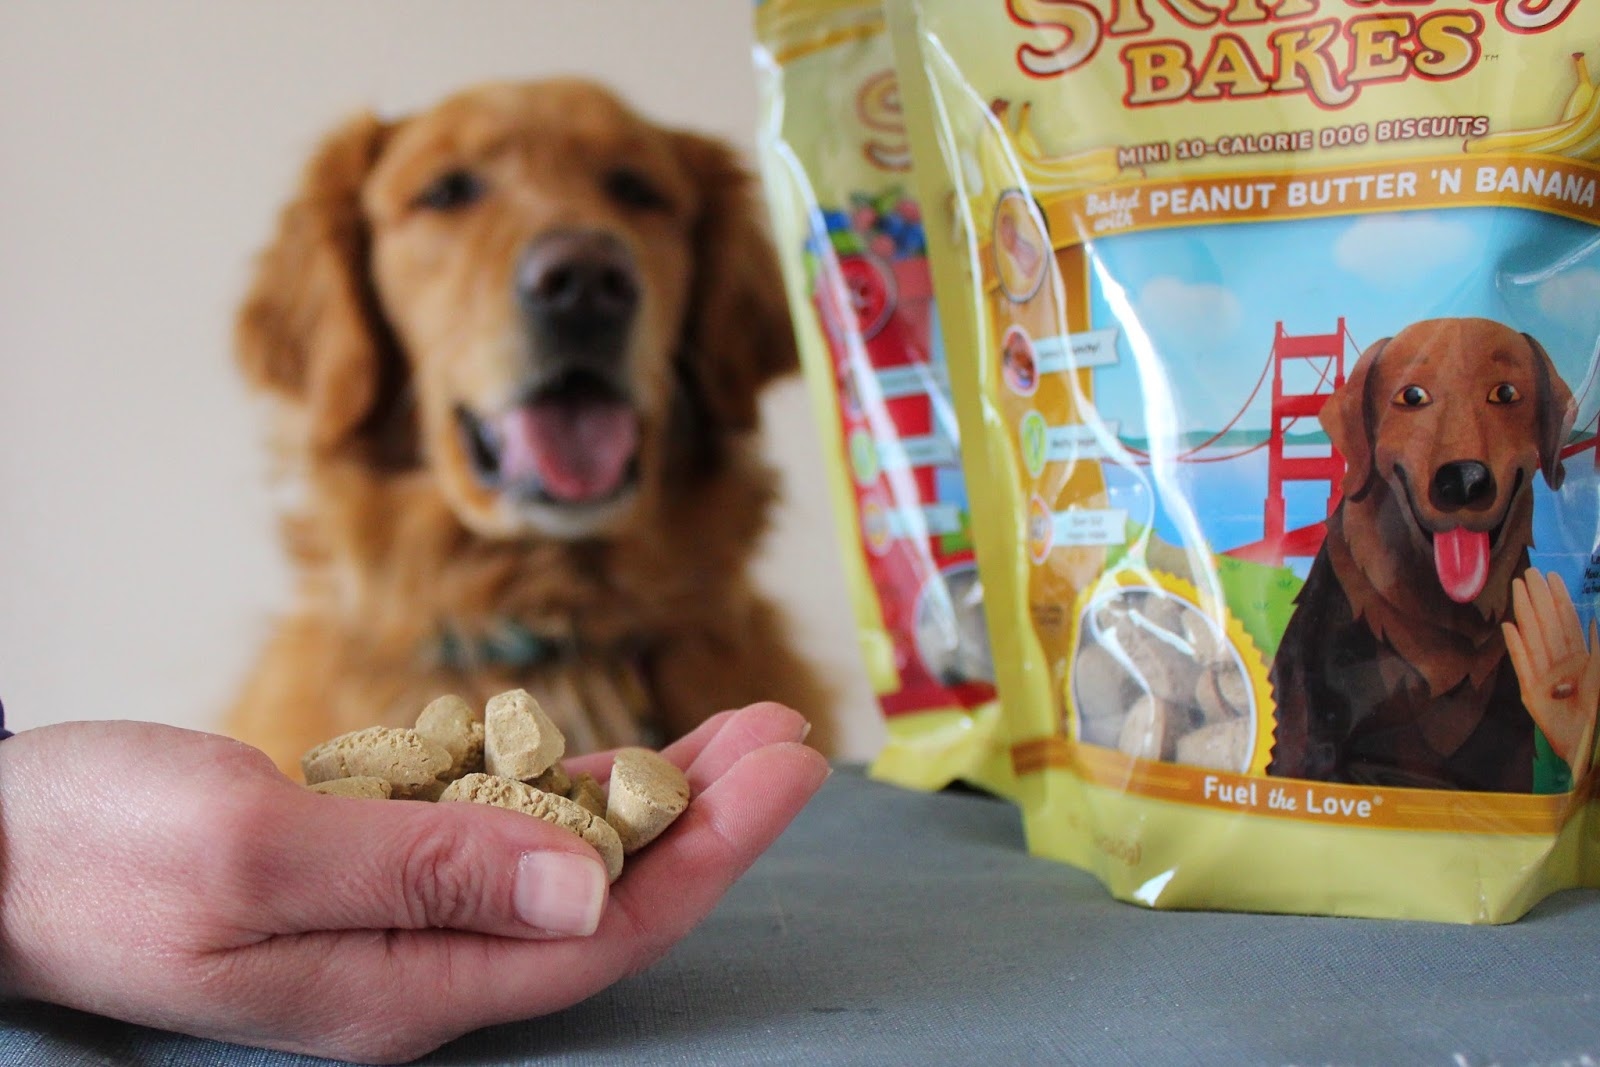 Zukes skinny bakes low calorie dog treats giveaway